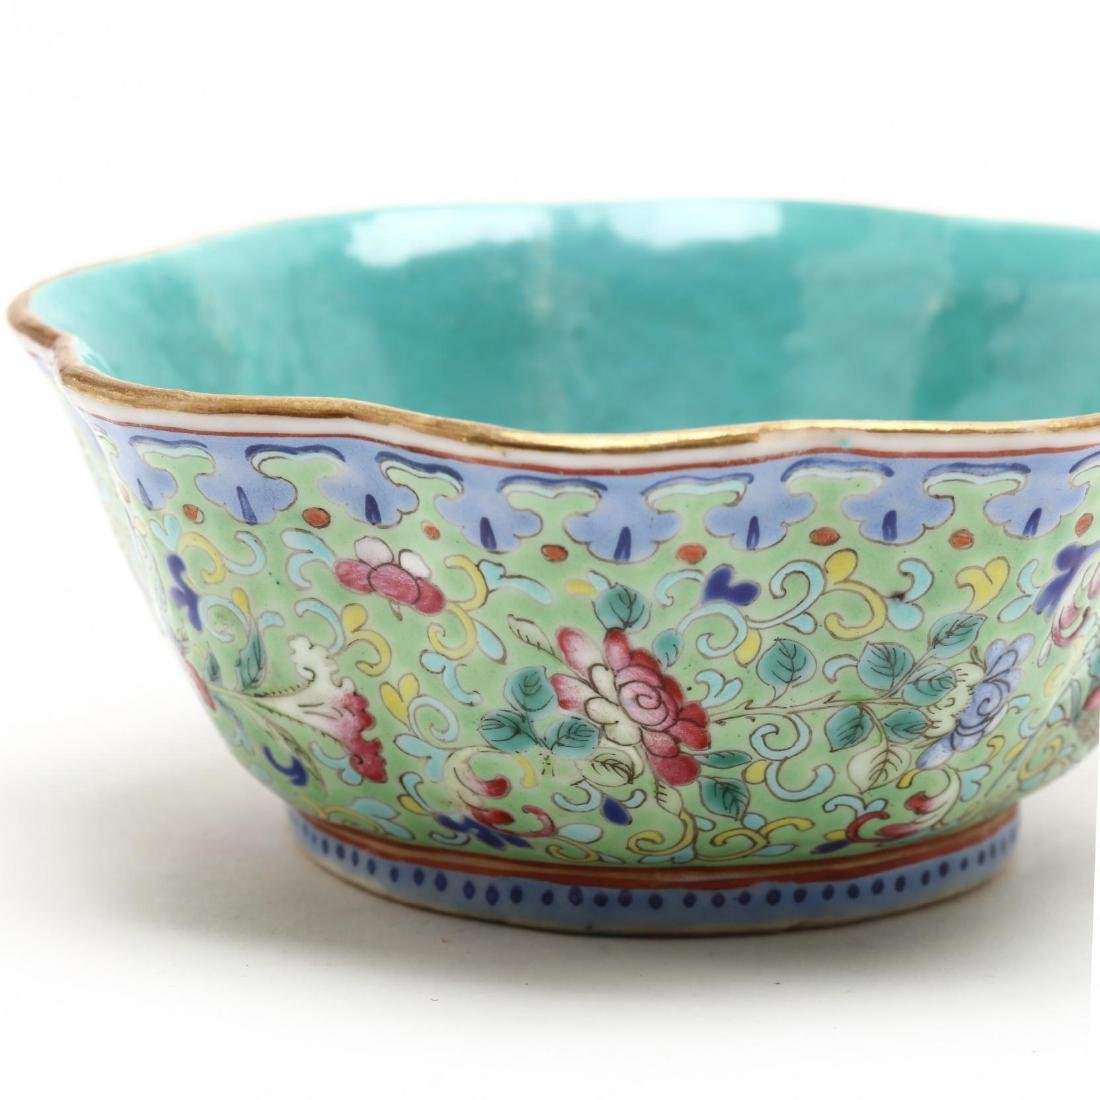 A Matched Pair of Chinese Porcelain Scalloped Bowls - 6